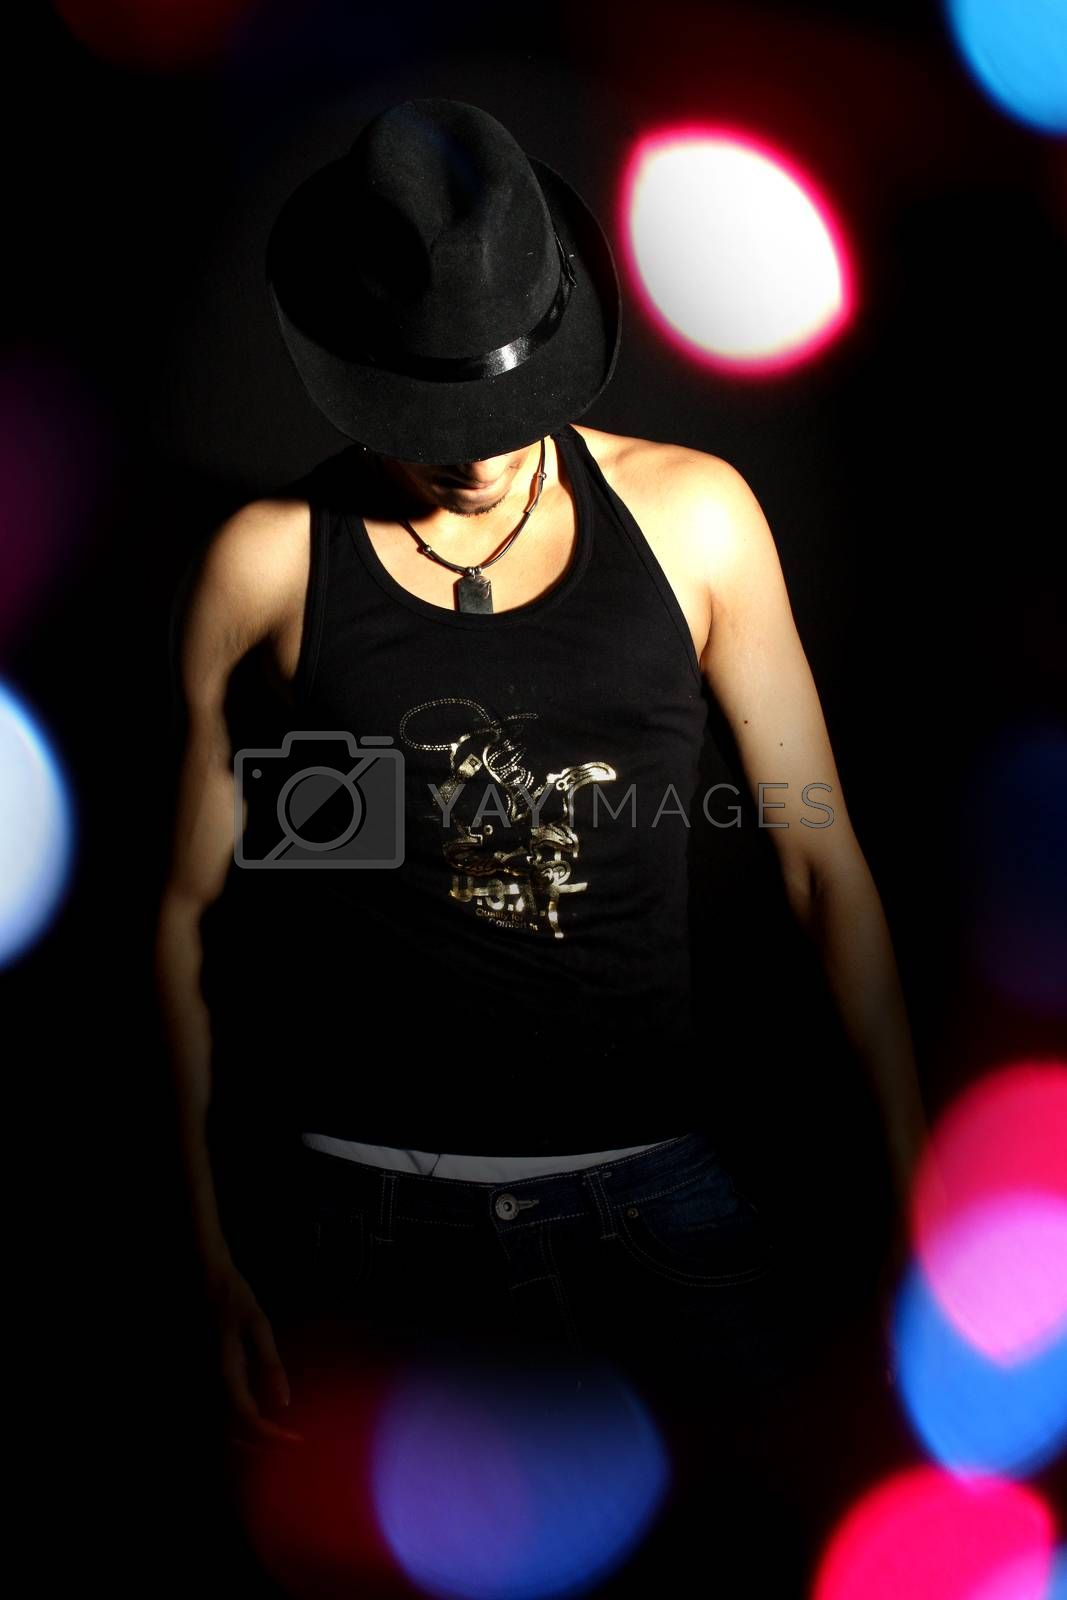 Royalty free image of A Stylish Dancer in a spotlight and colorful lights by thefinalmiracle